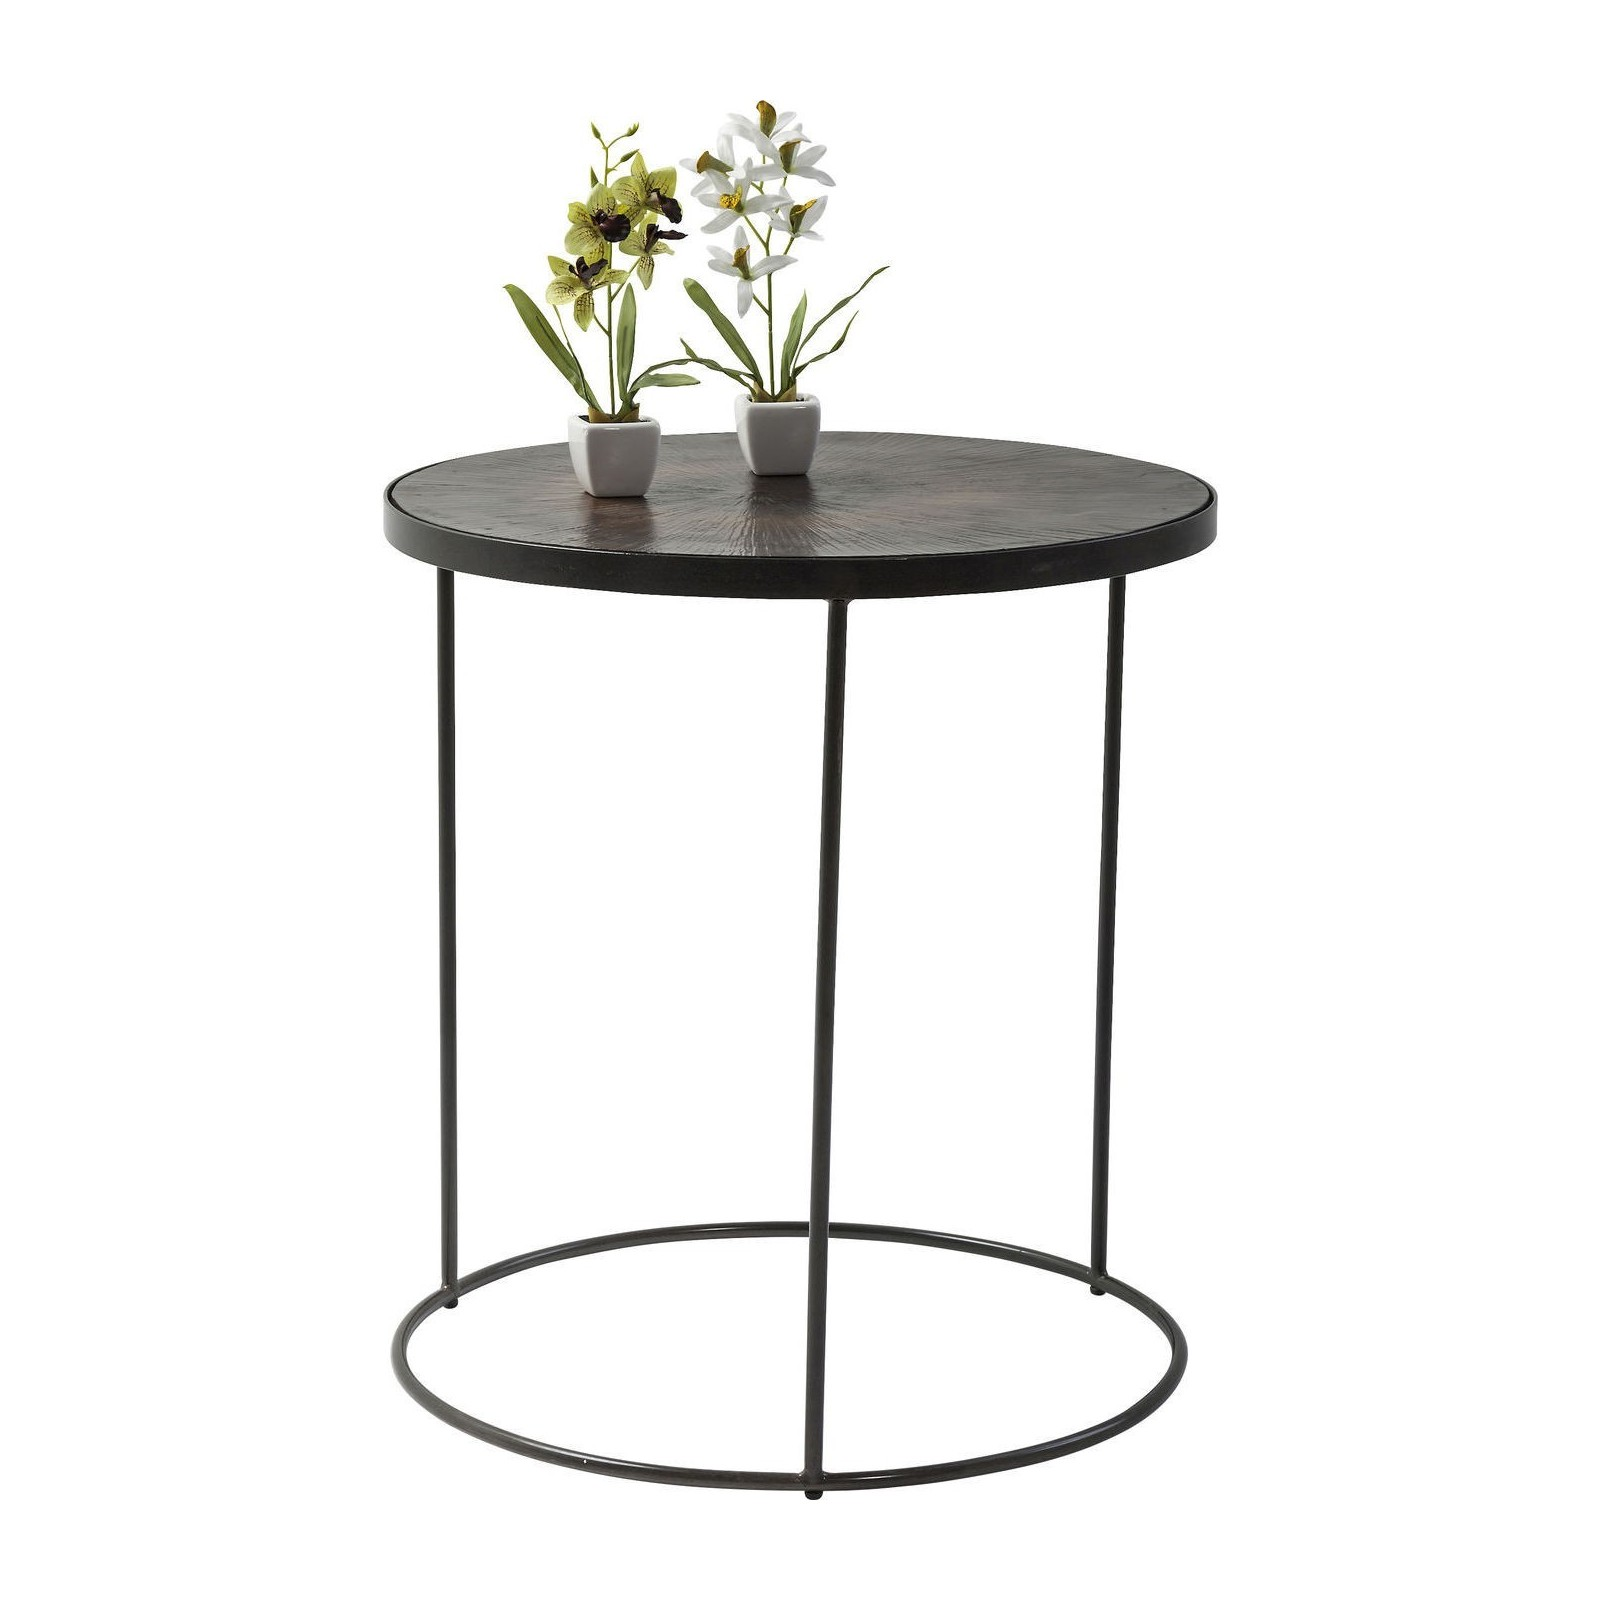 Table d 39 appoint balance 55cm kare design kare click - Table d appoint design ...